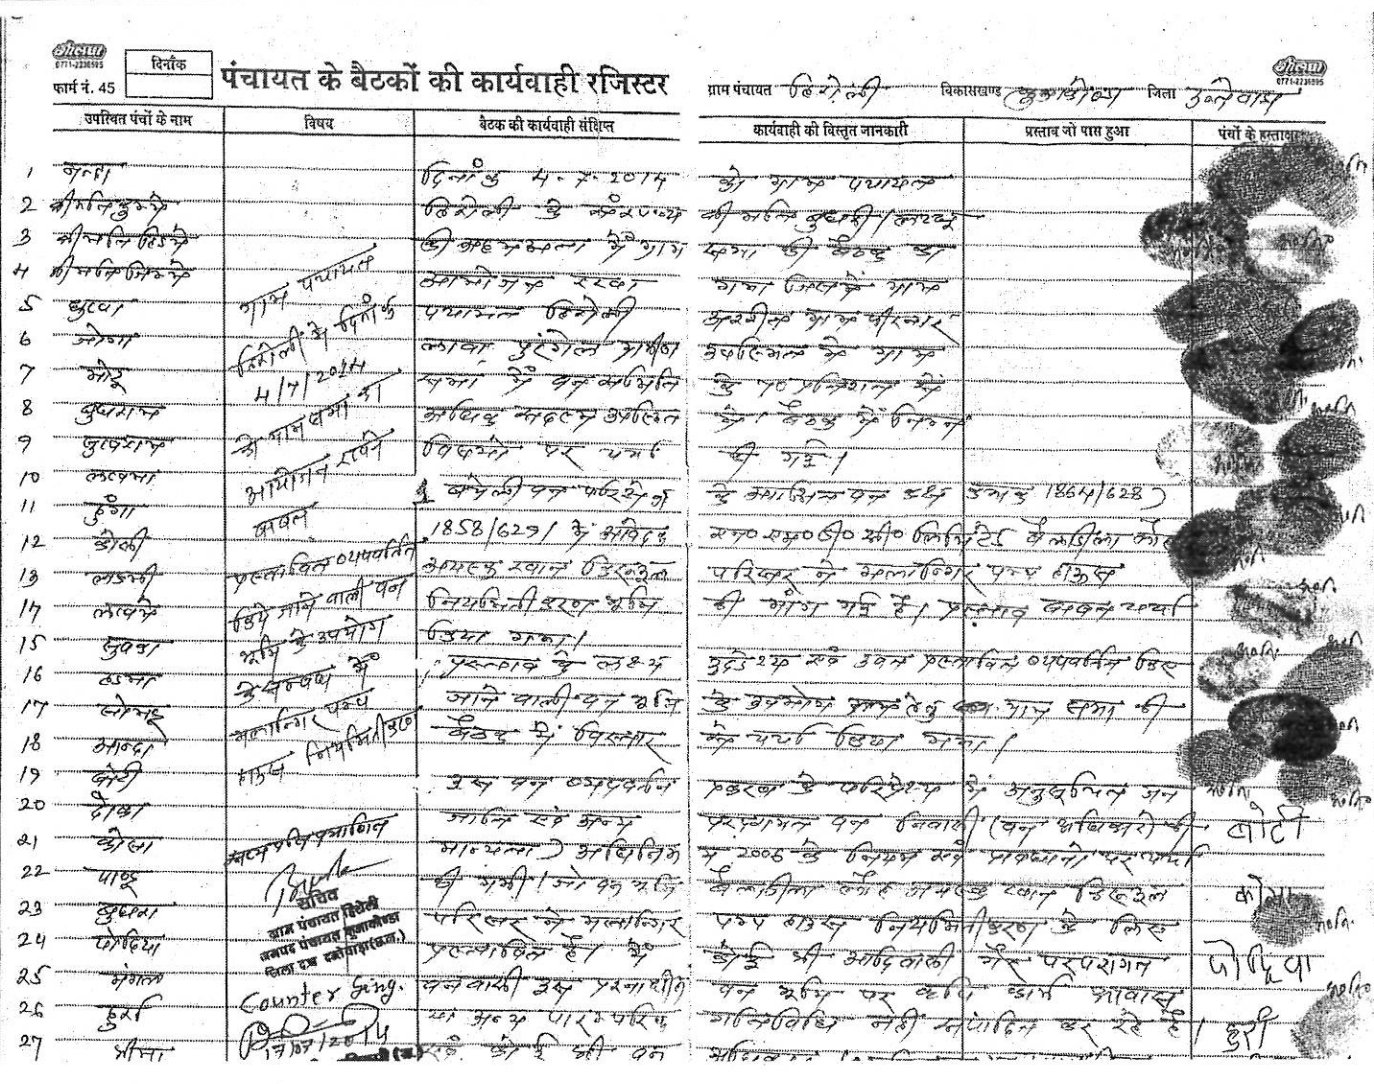 A copy of the panchayat register featuring the names, thumb impressions and signatures of 106 villagers who attended the gram sabha purportedly held in July 2014.